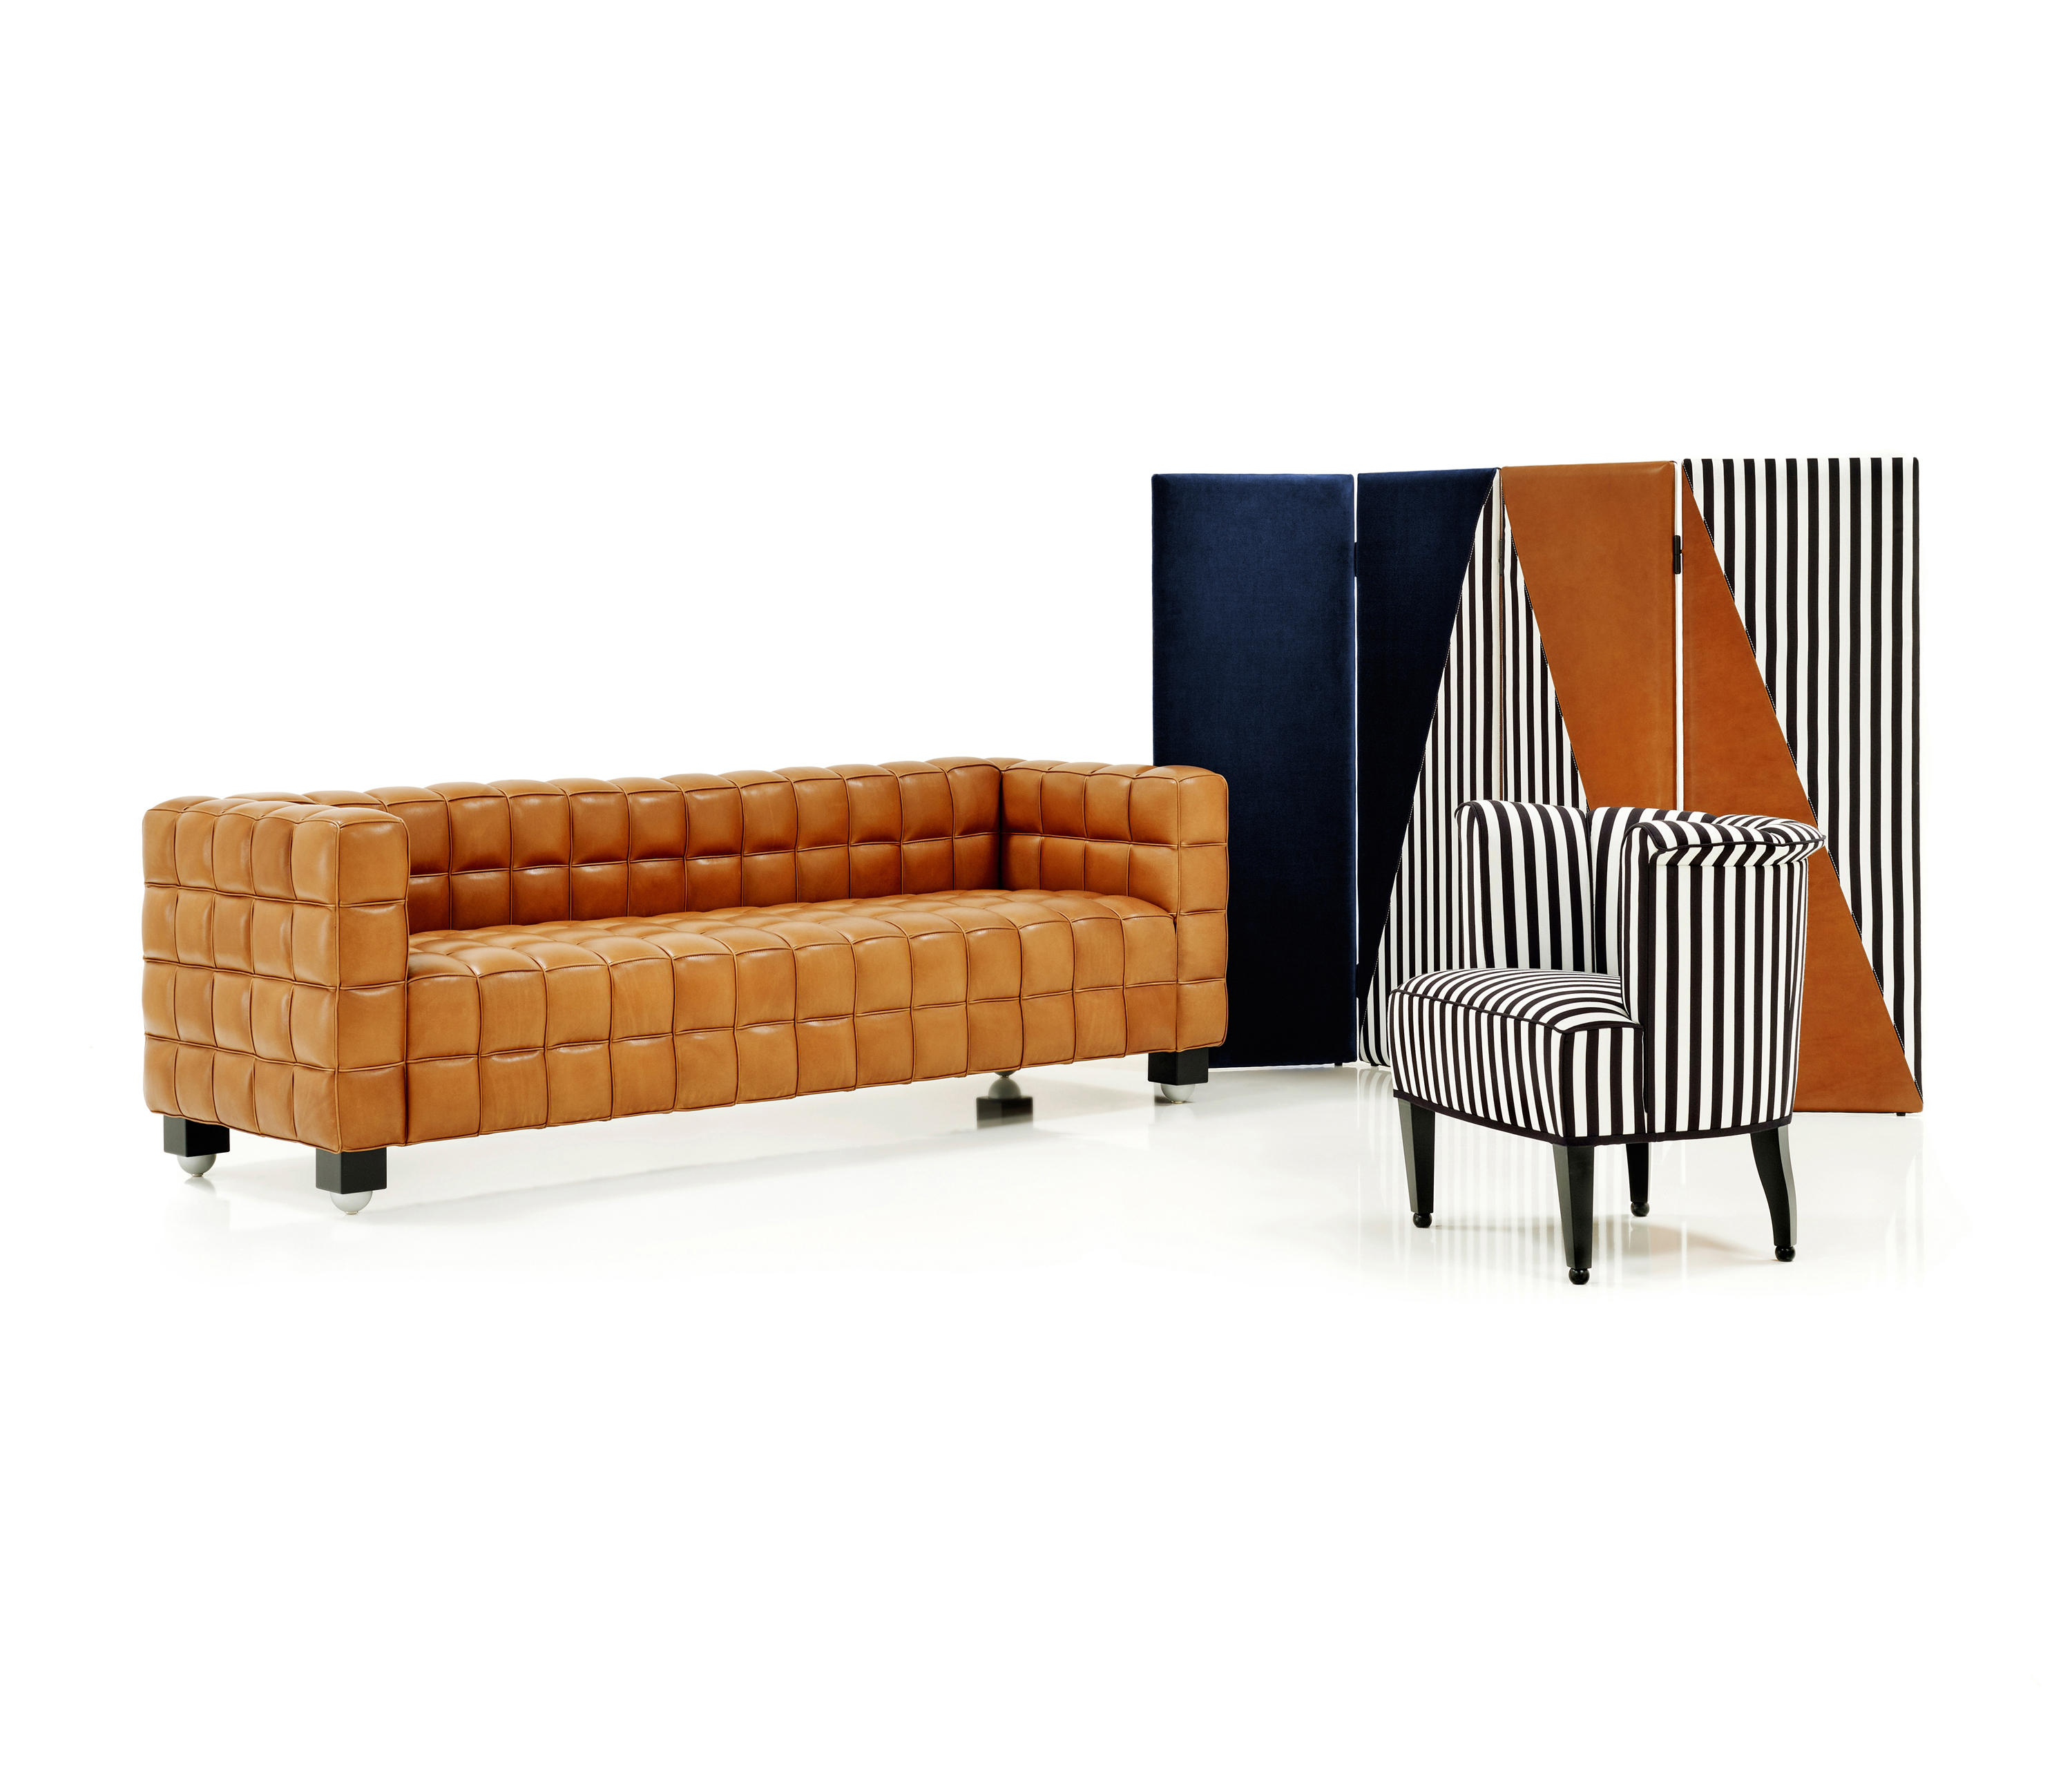 Paravent Folding Screens From Wittmann Architonic